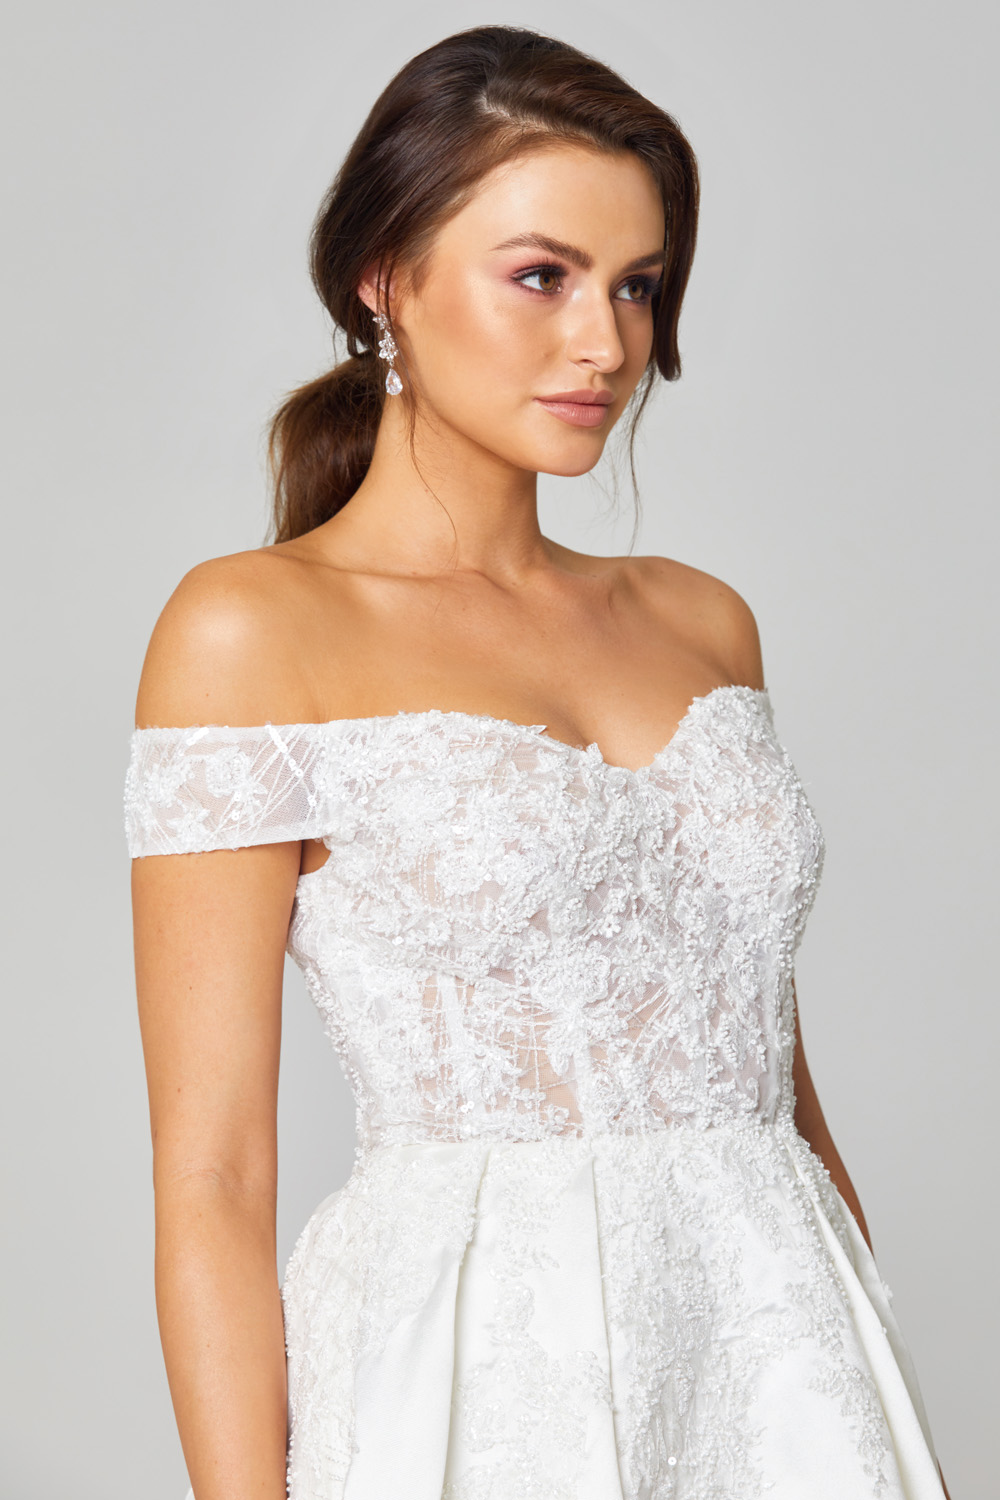 Eliza Off-shoulder Satin Wedding Dress - TC307 close up